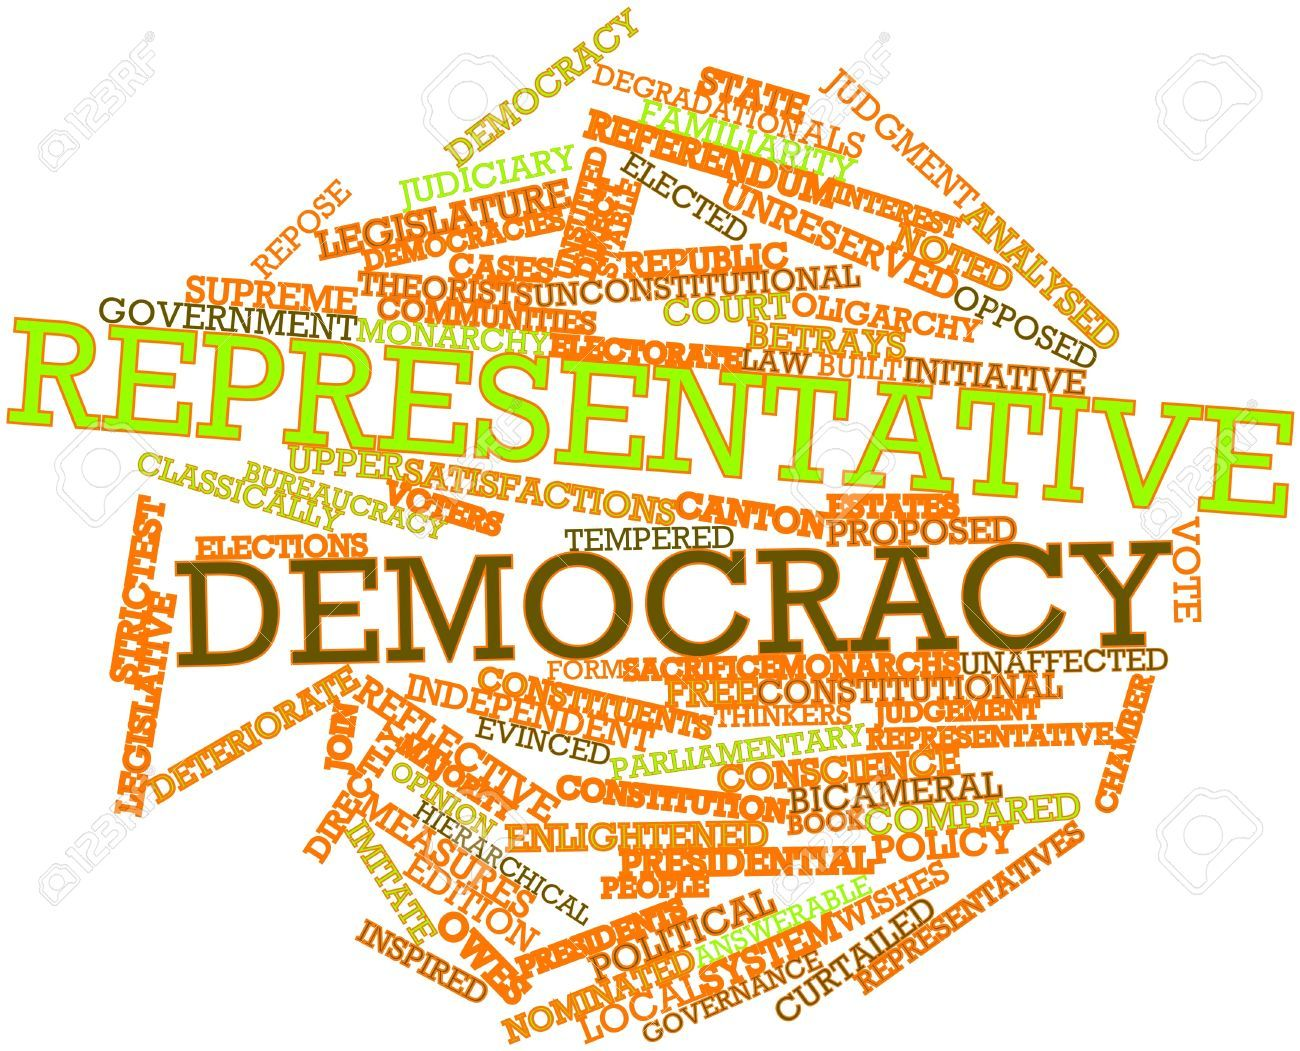 Representative Democracy Is A System Of Government In Which All Eligible Citizens Vote On